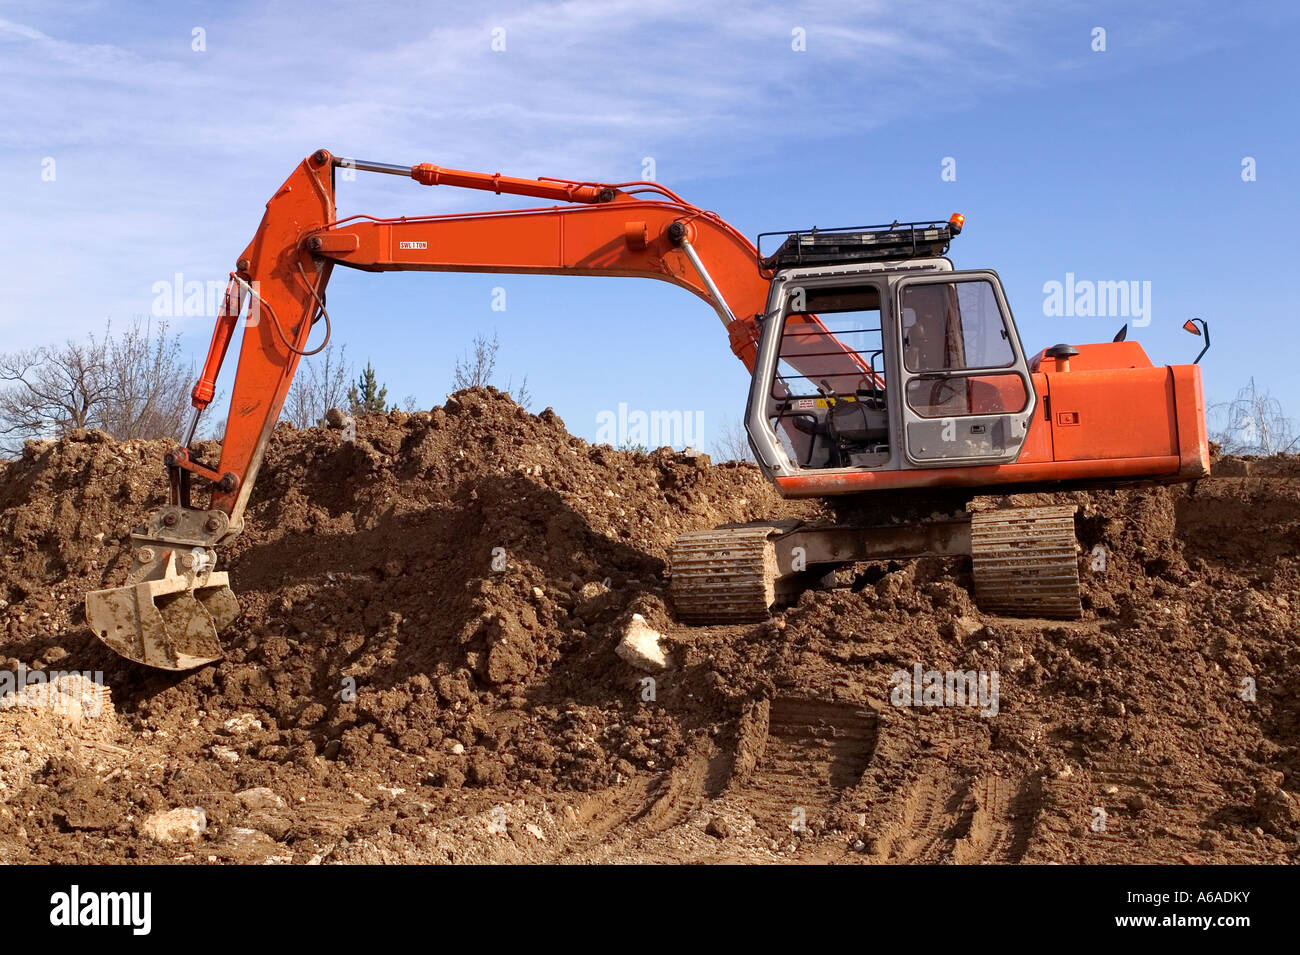 Construction digger on a mound of earth - Stock Image